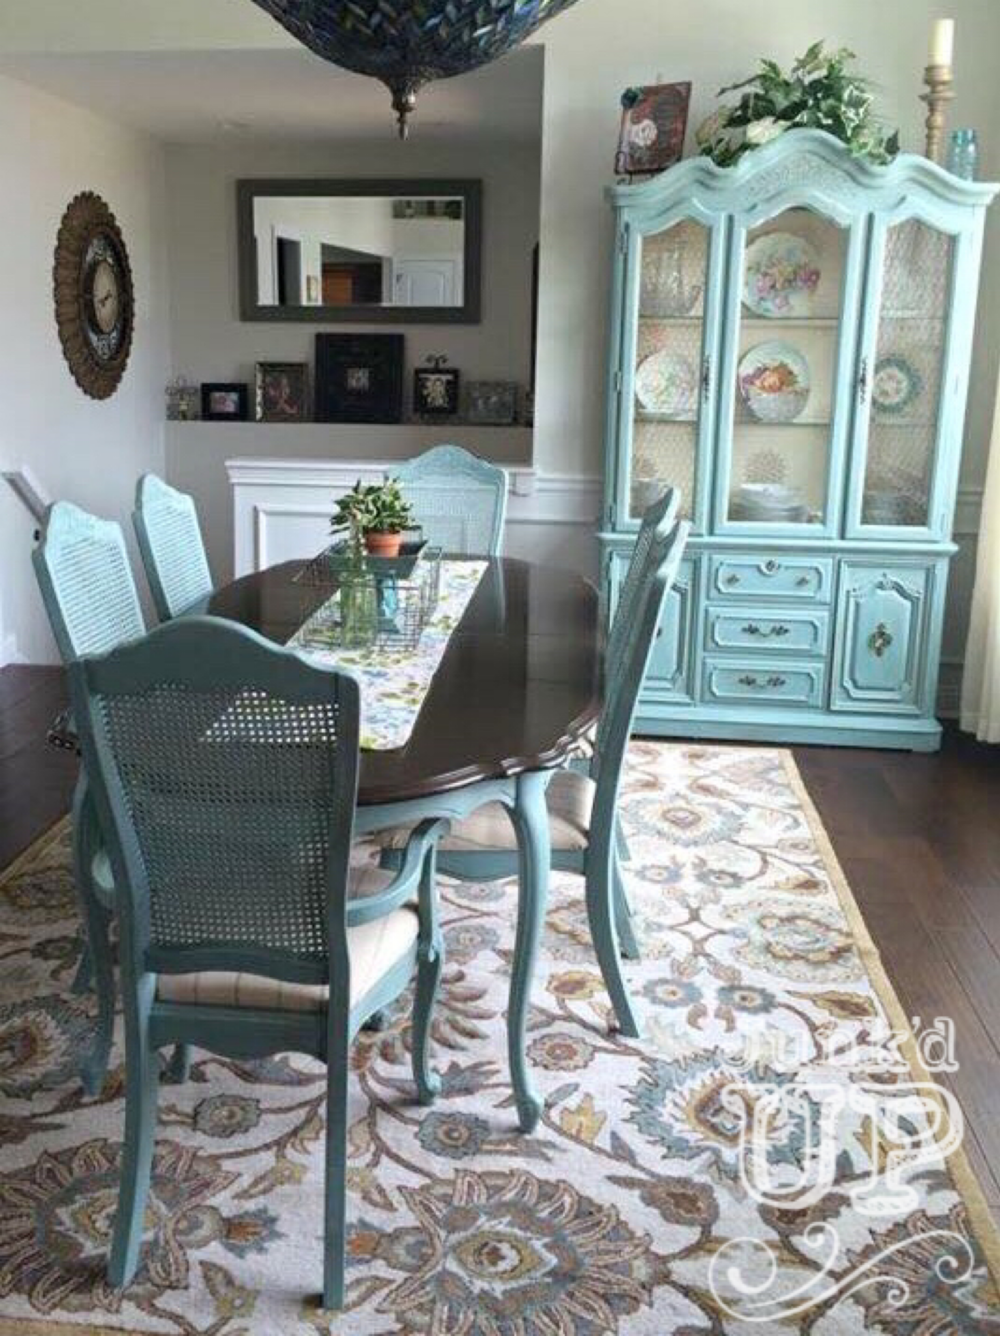 Coastal Inspirations - My client fell in love with this soft blue-green finish after noticing it on a dresser we completed. We replicated the finish on her hand-me-down, tired dining set. Now it's the show stopper centerpiece of her home.